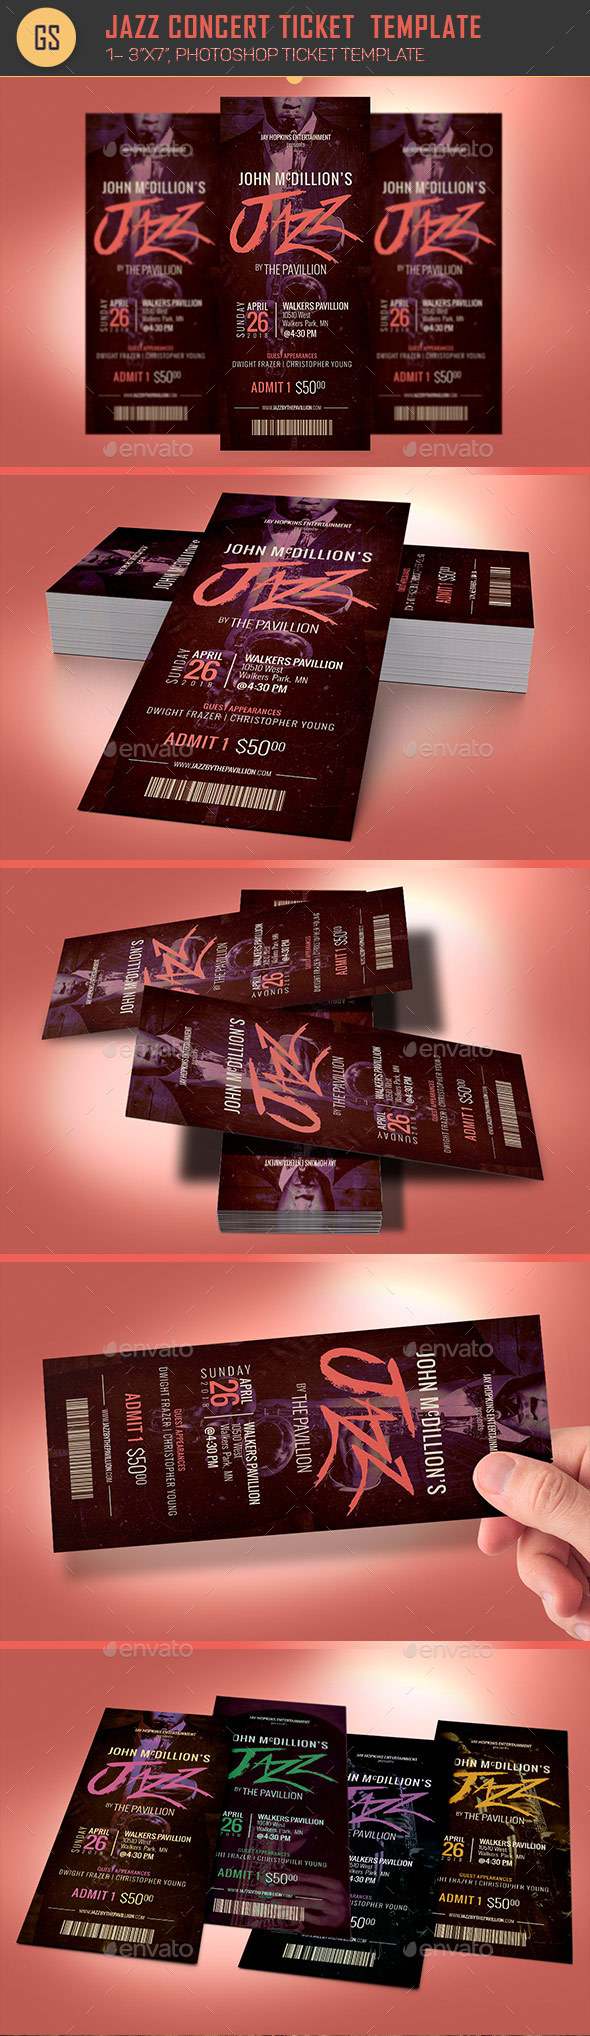 Jazz Concert Ticket Template - Miscellaneous Print Templates